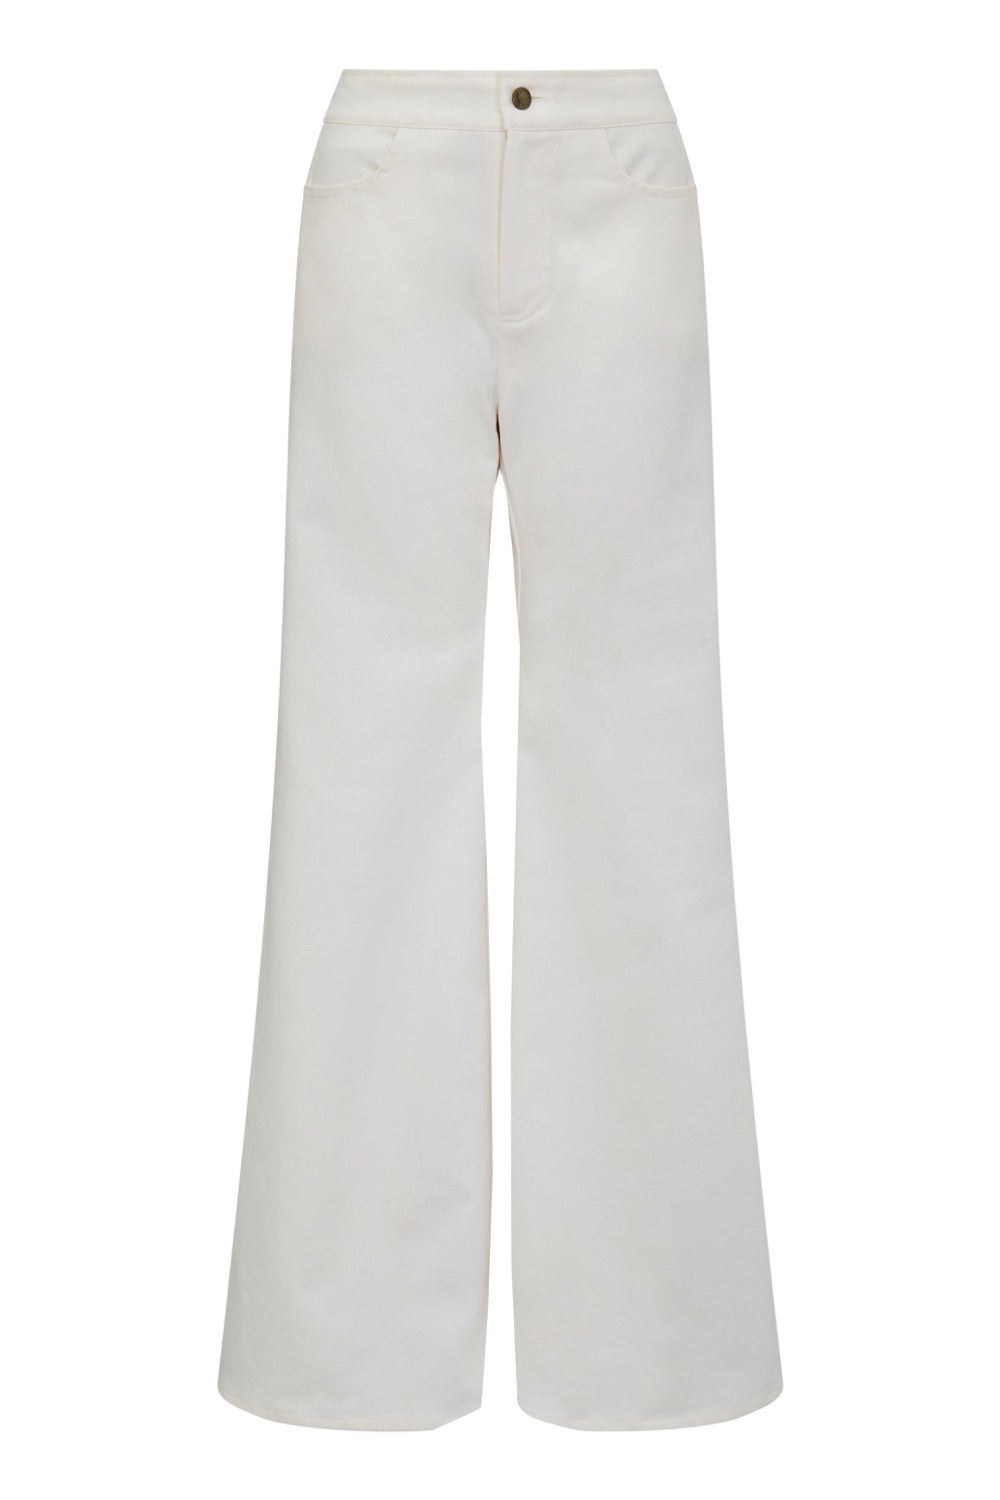 HUMBUG WIDE LEG JEANS - CREAM